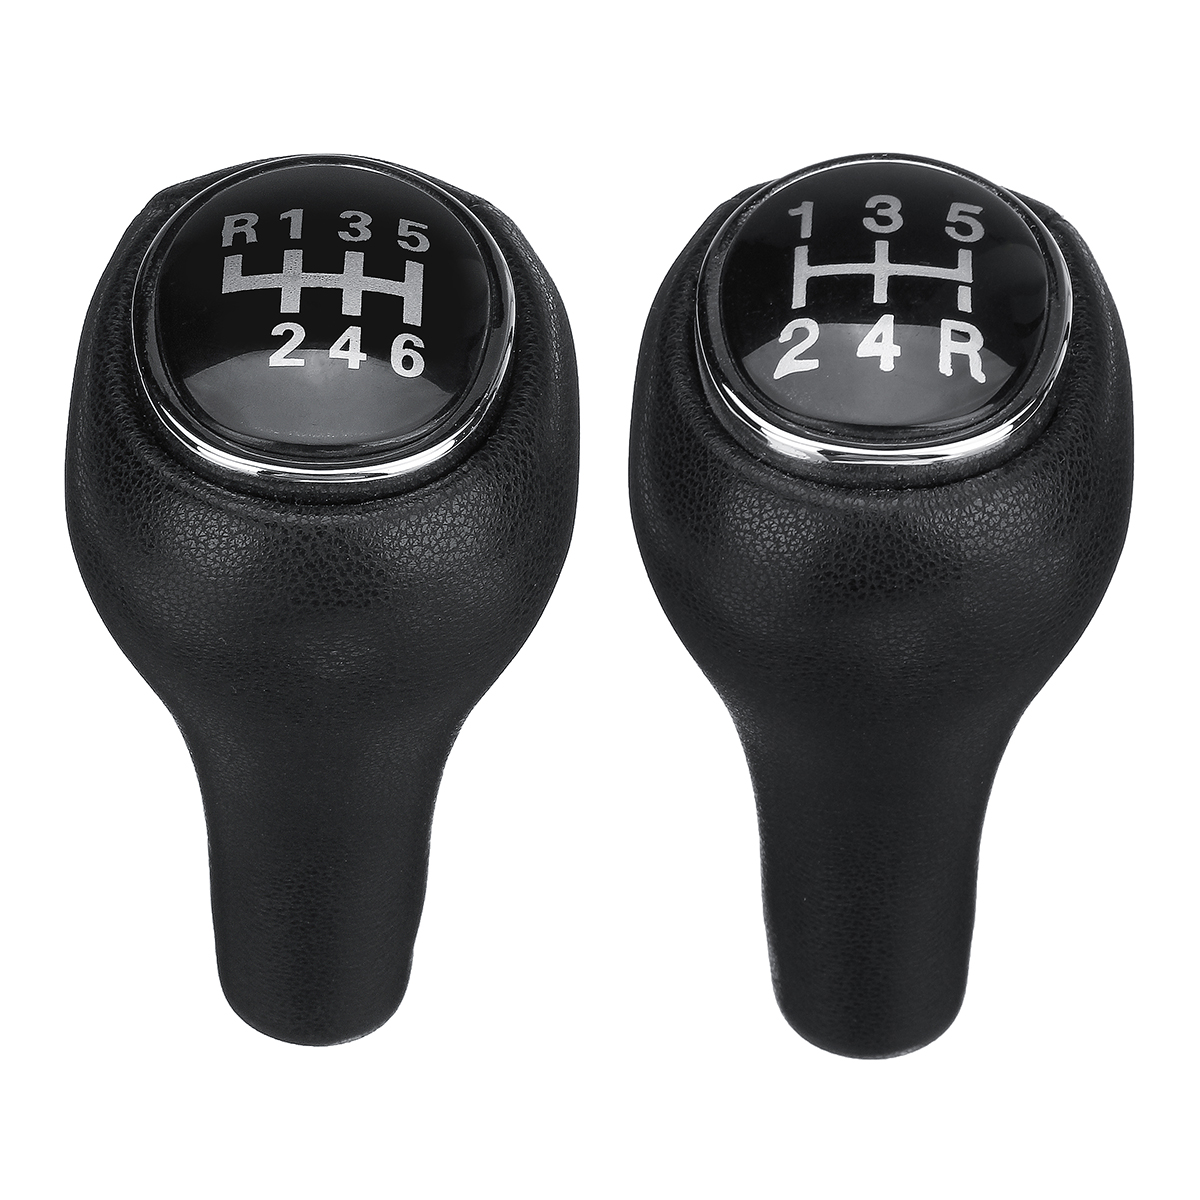 5 6 Speed Gear Shift Knob For Ford Focus MK1 1998-2005 Black